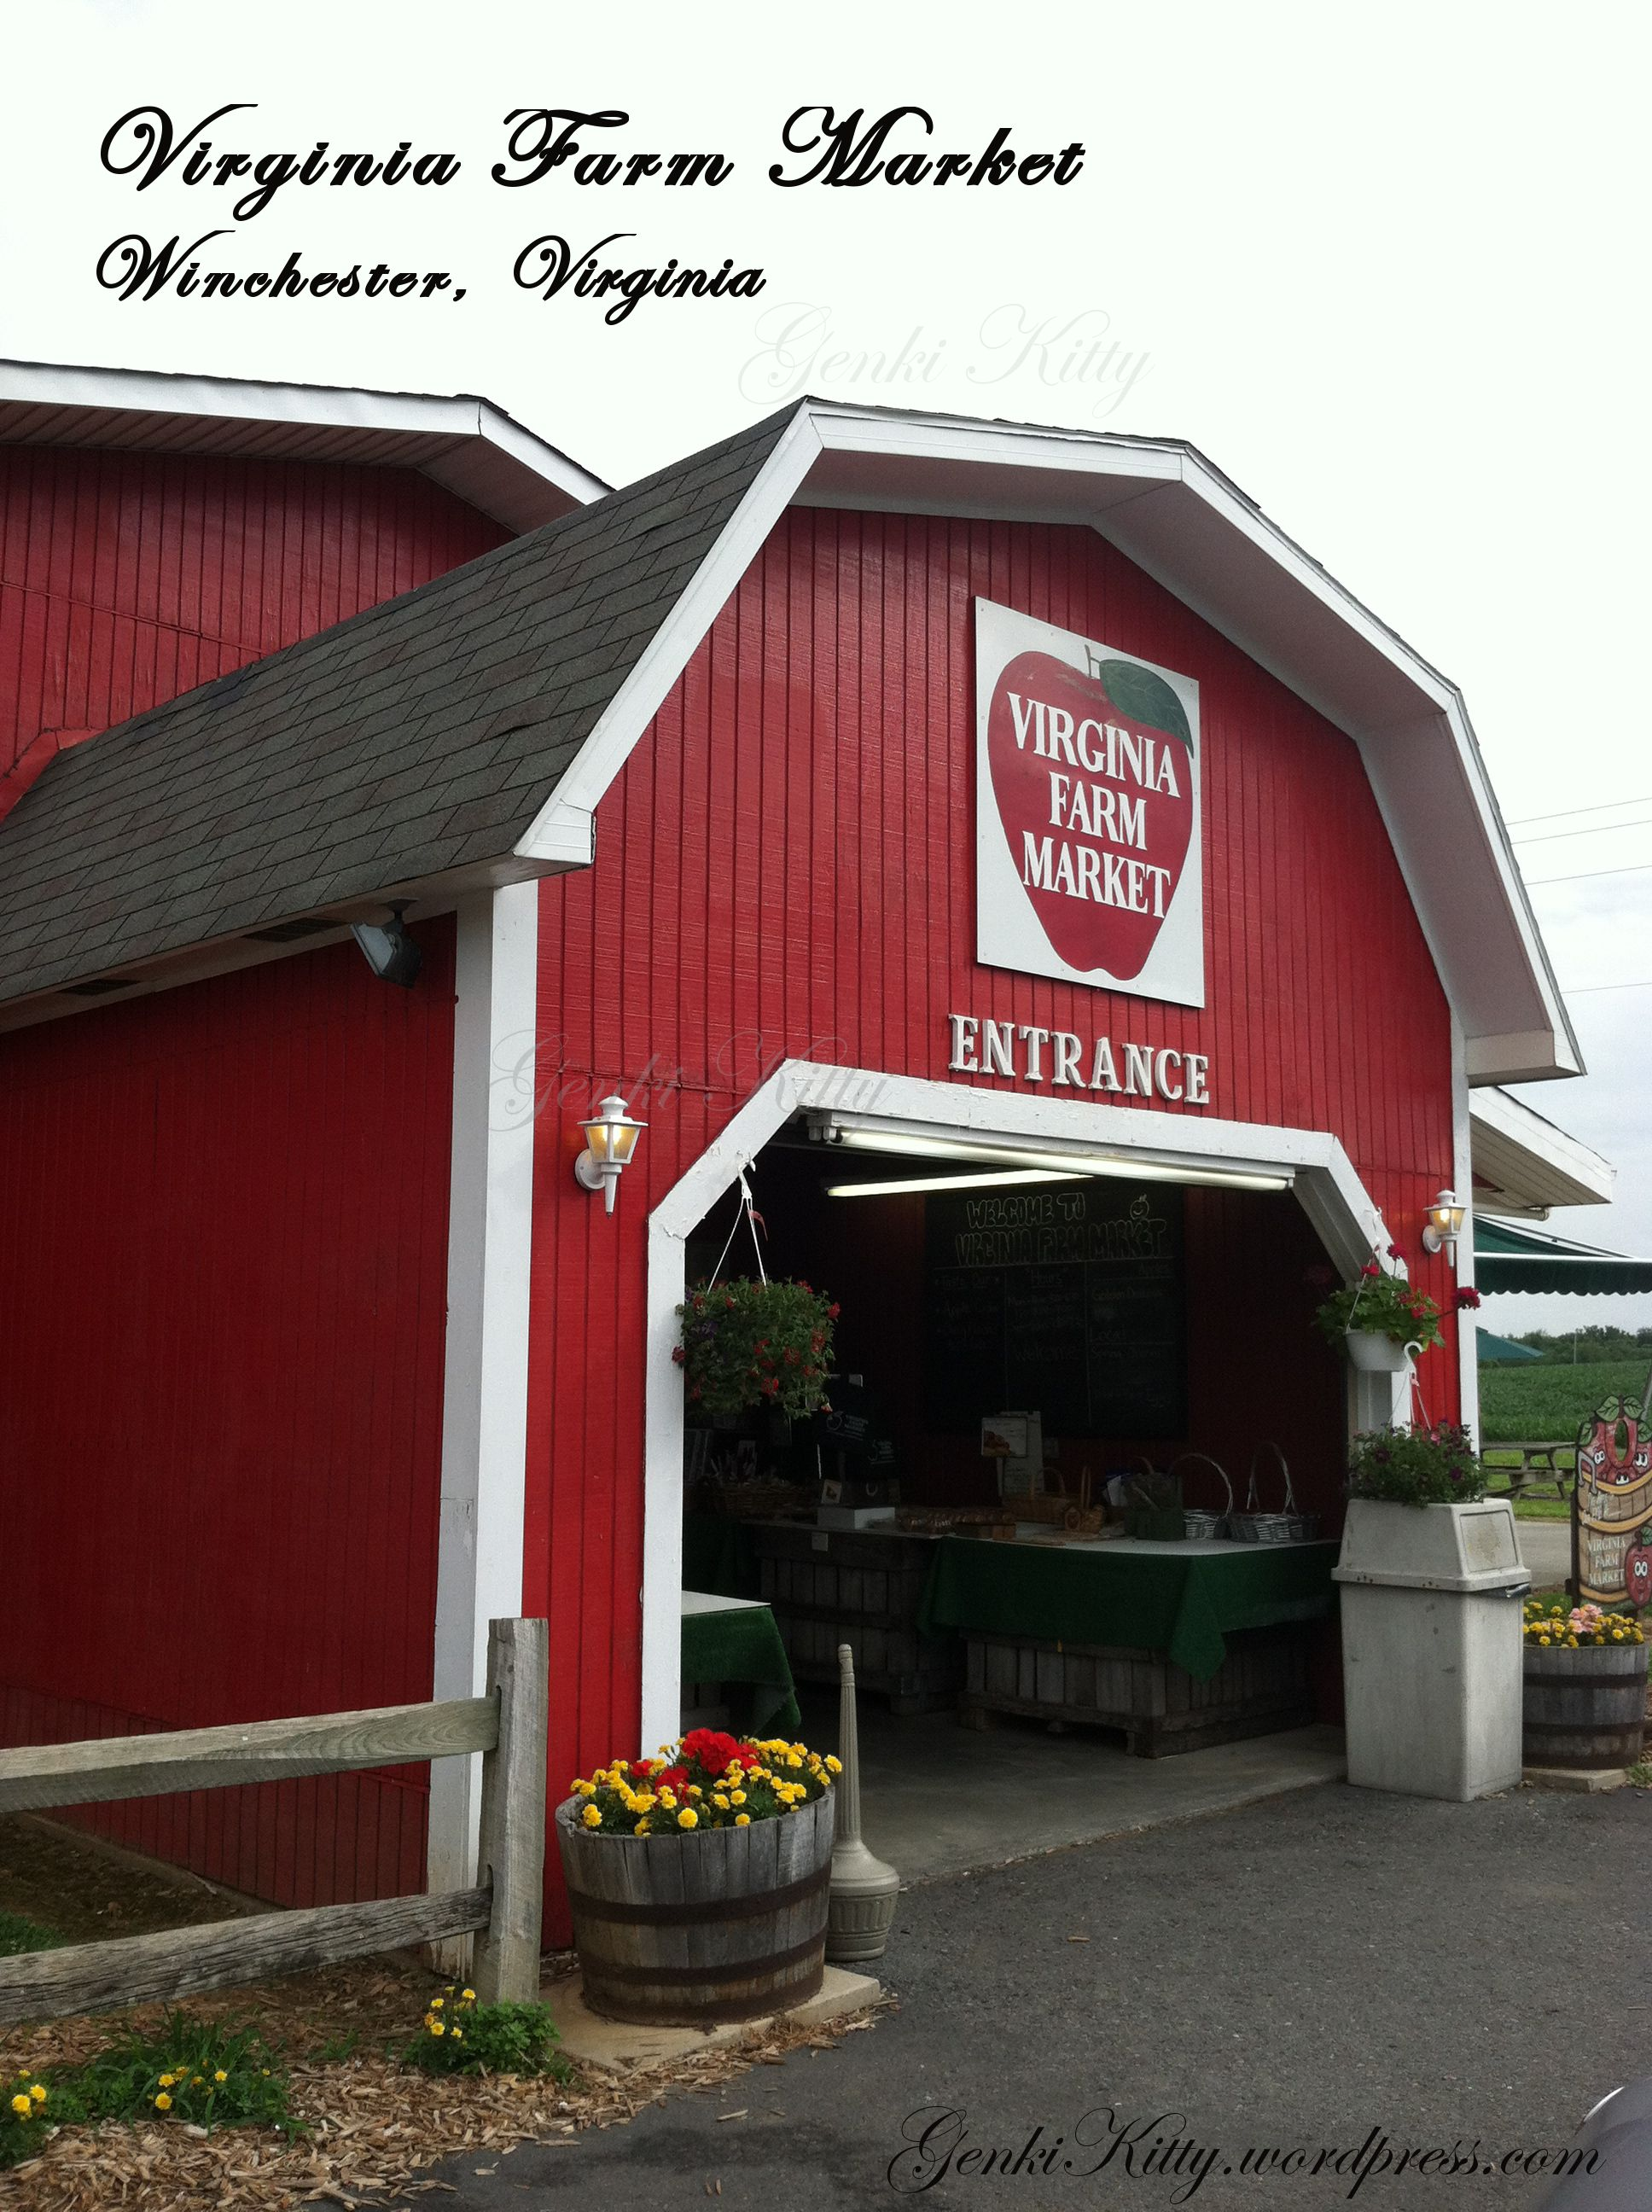 va farm market wonderful stop if passing through there are